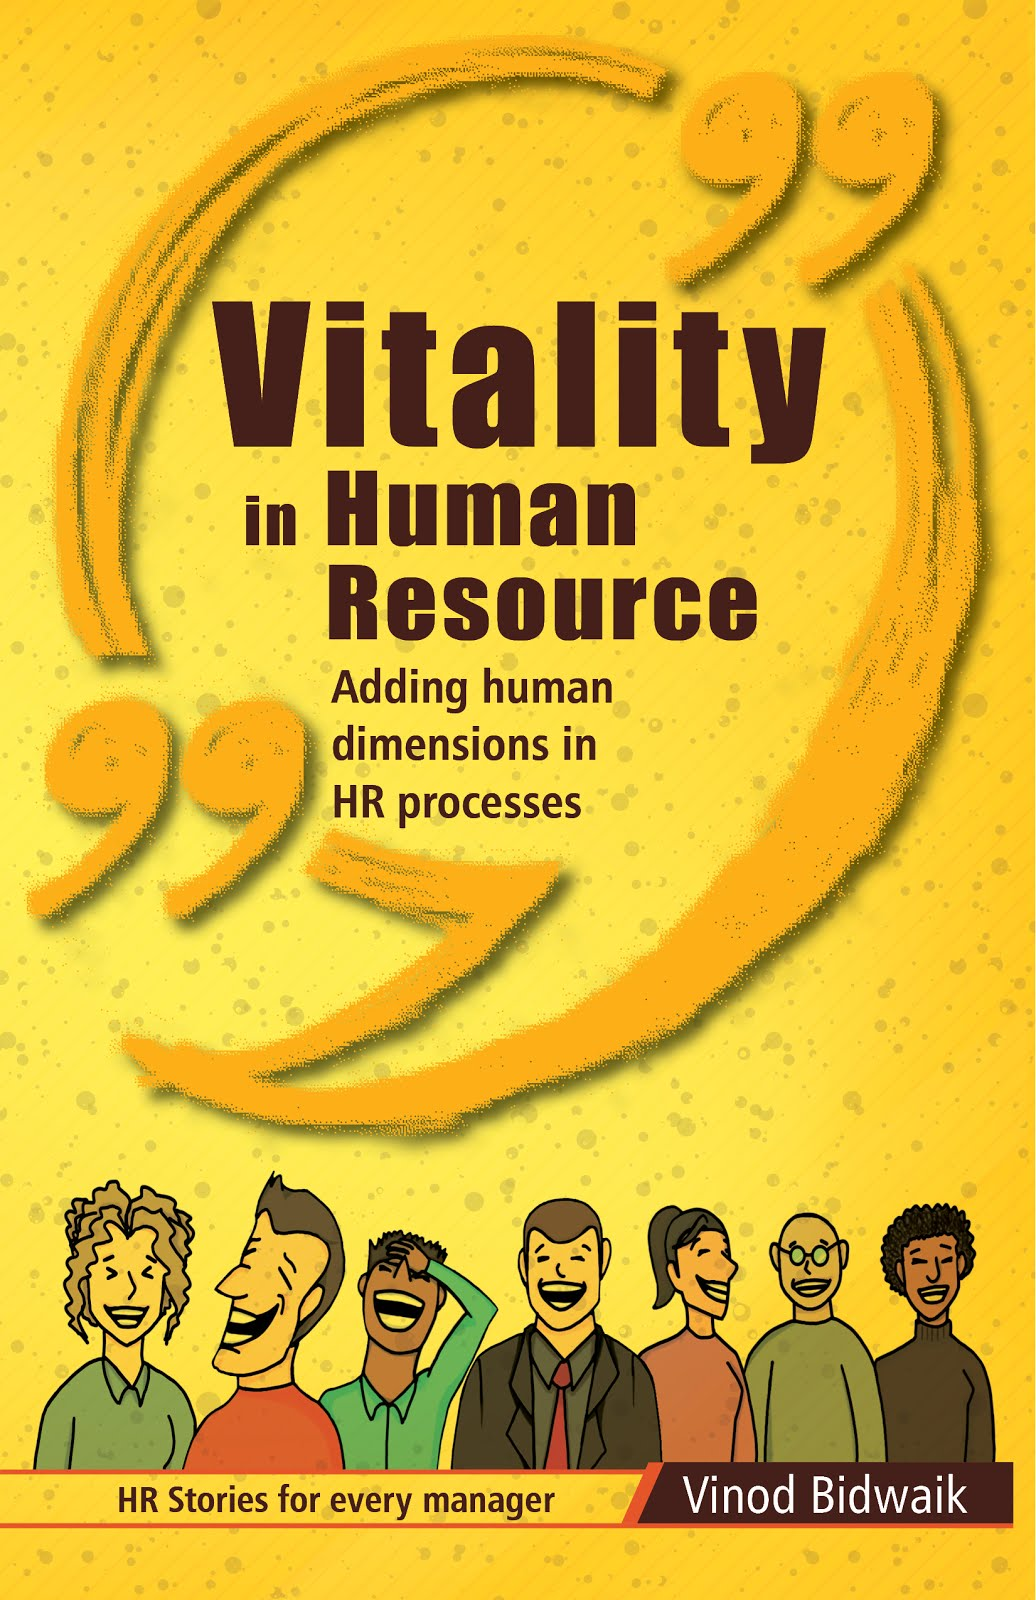 Vitality in Human Resource